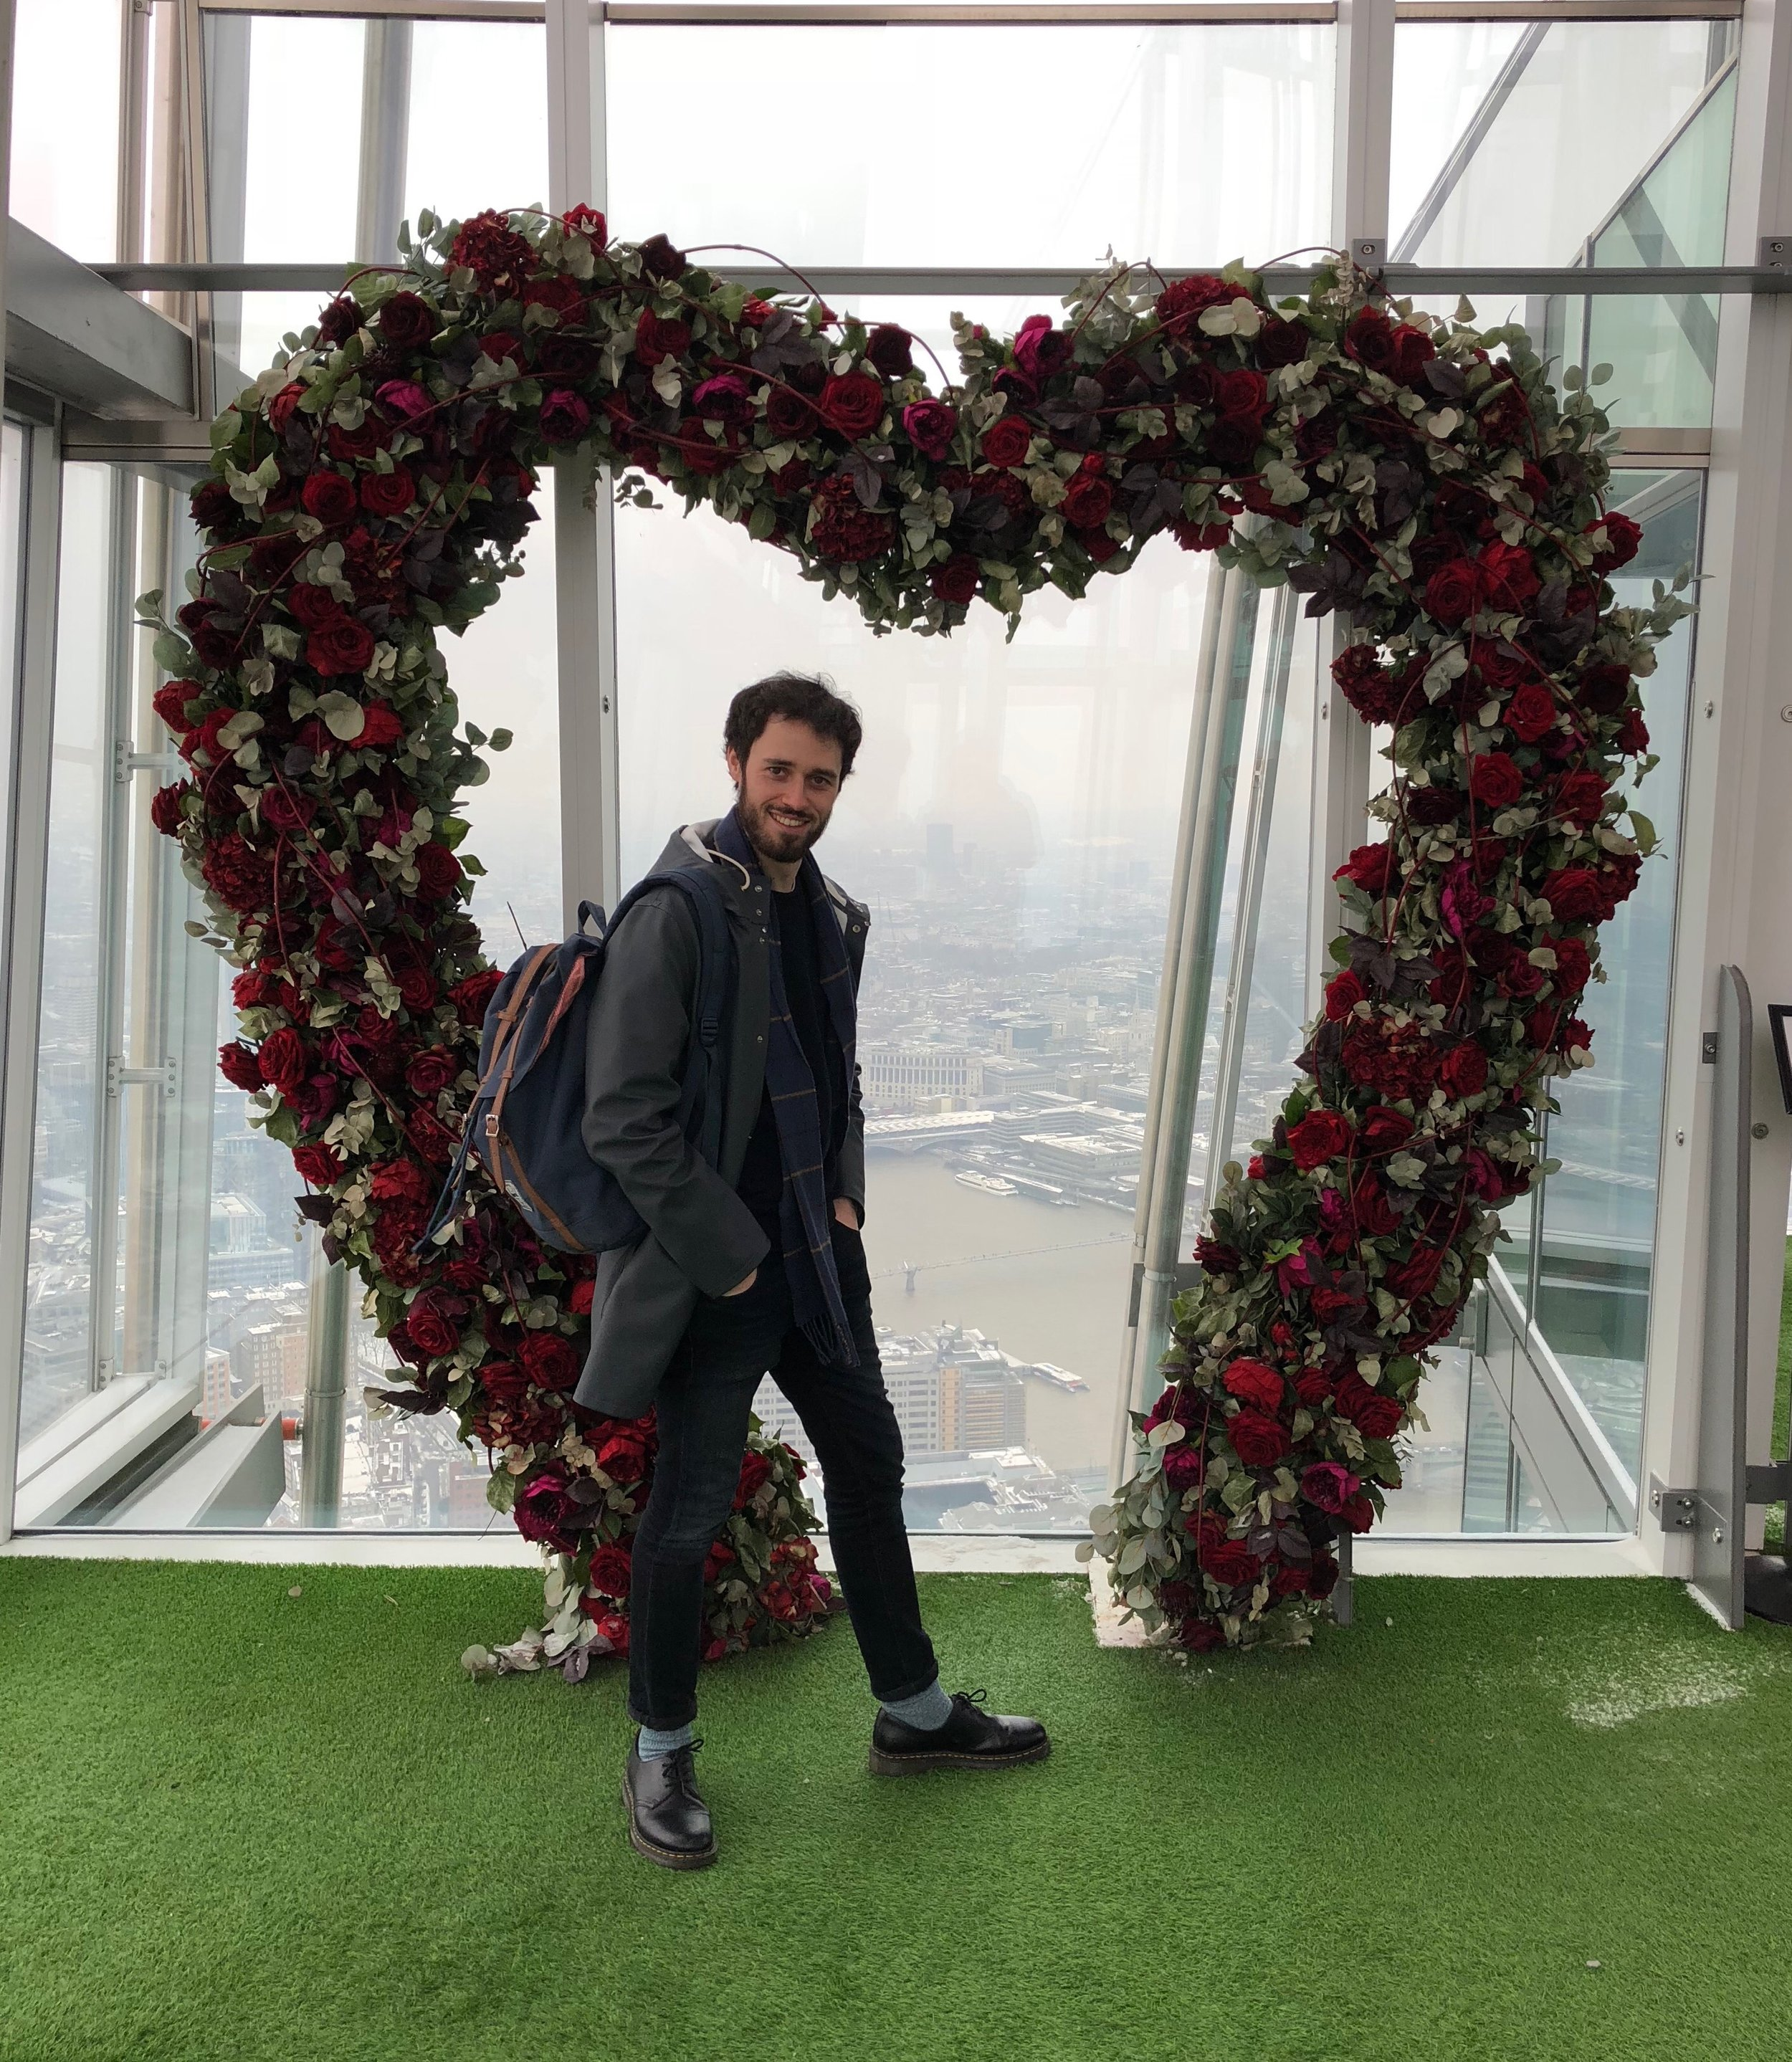 A smiling Tim stood inside a heart shaped rose arch